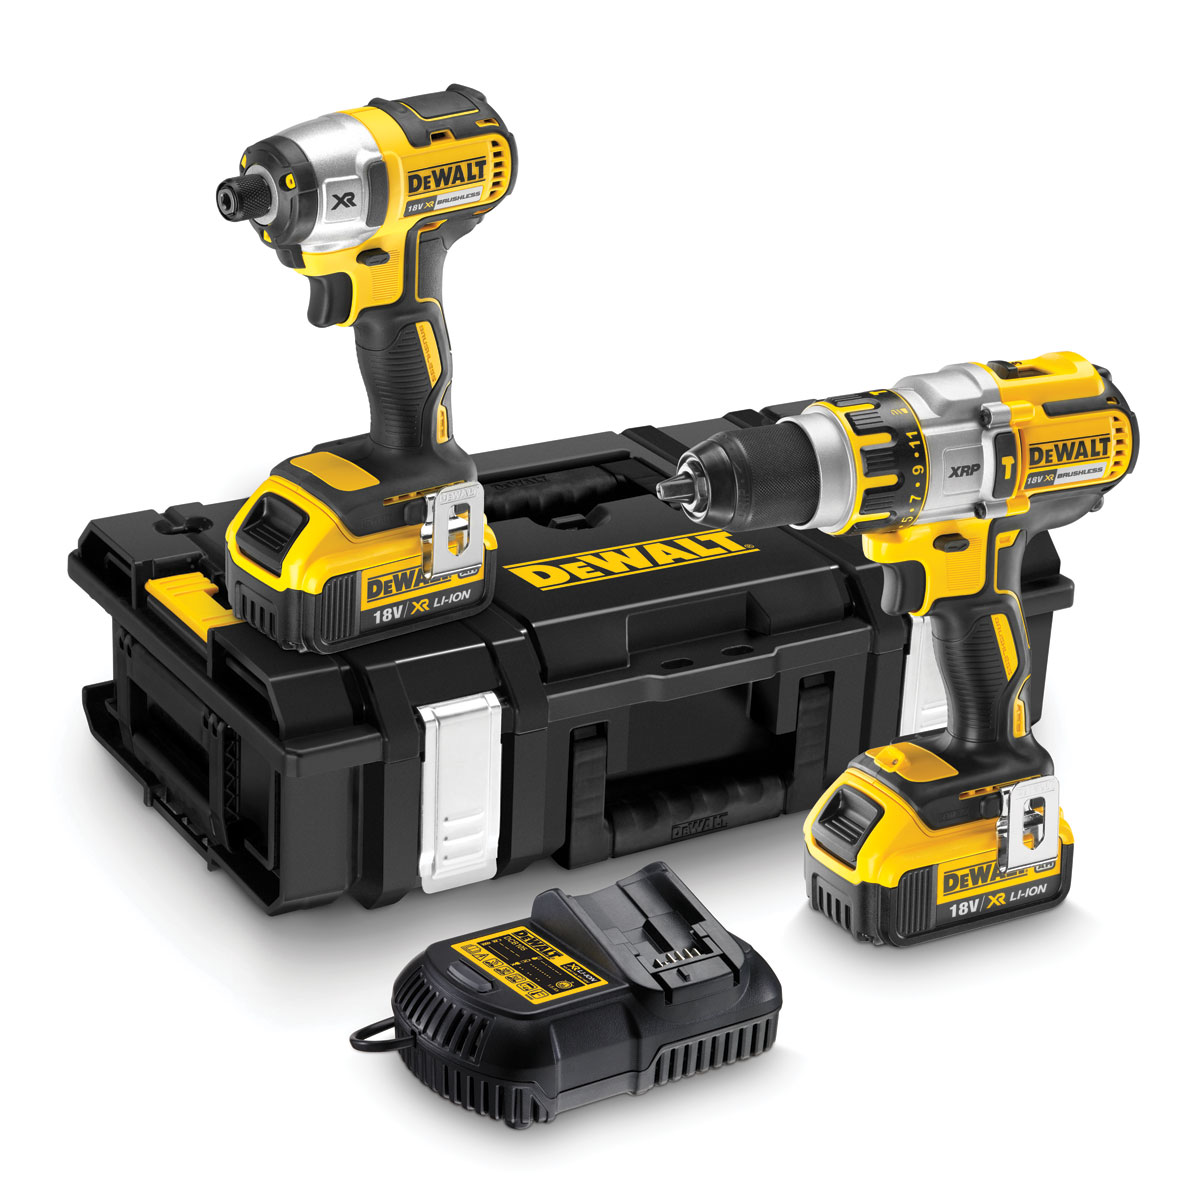 DEWALT DCK255M2 18V BRUSHLESS 3 SPEED TWIN PACK 2 x 4.0ah Li-ion BATTERIES